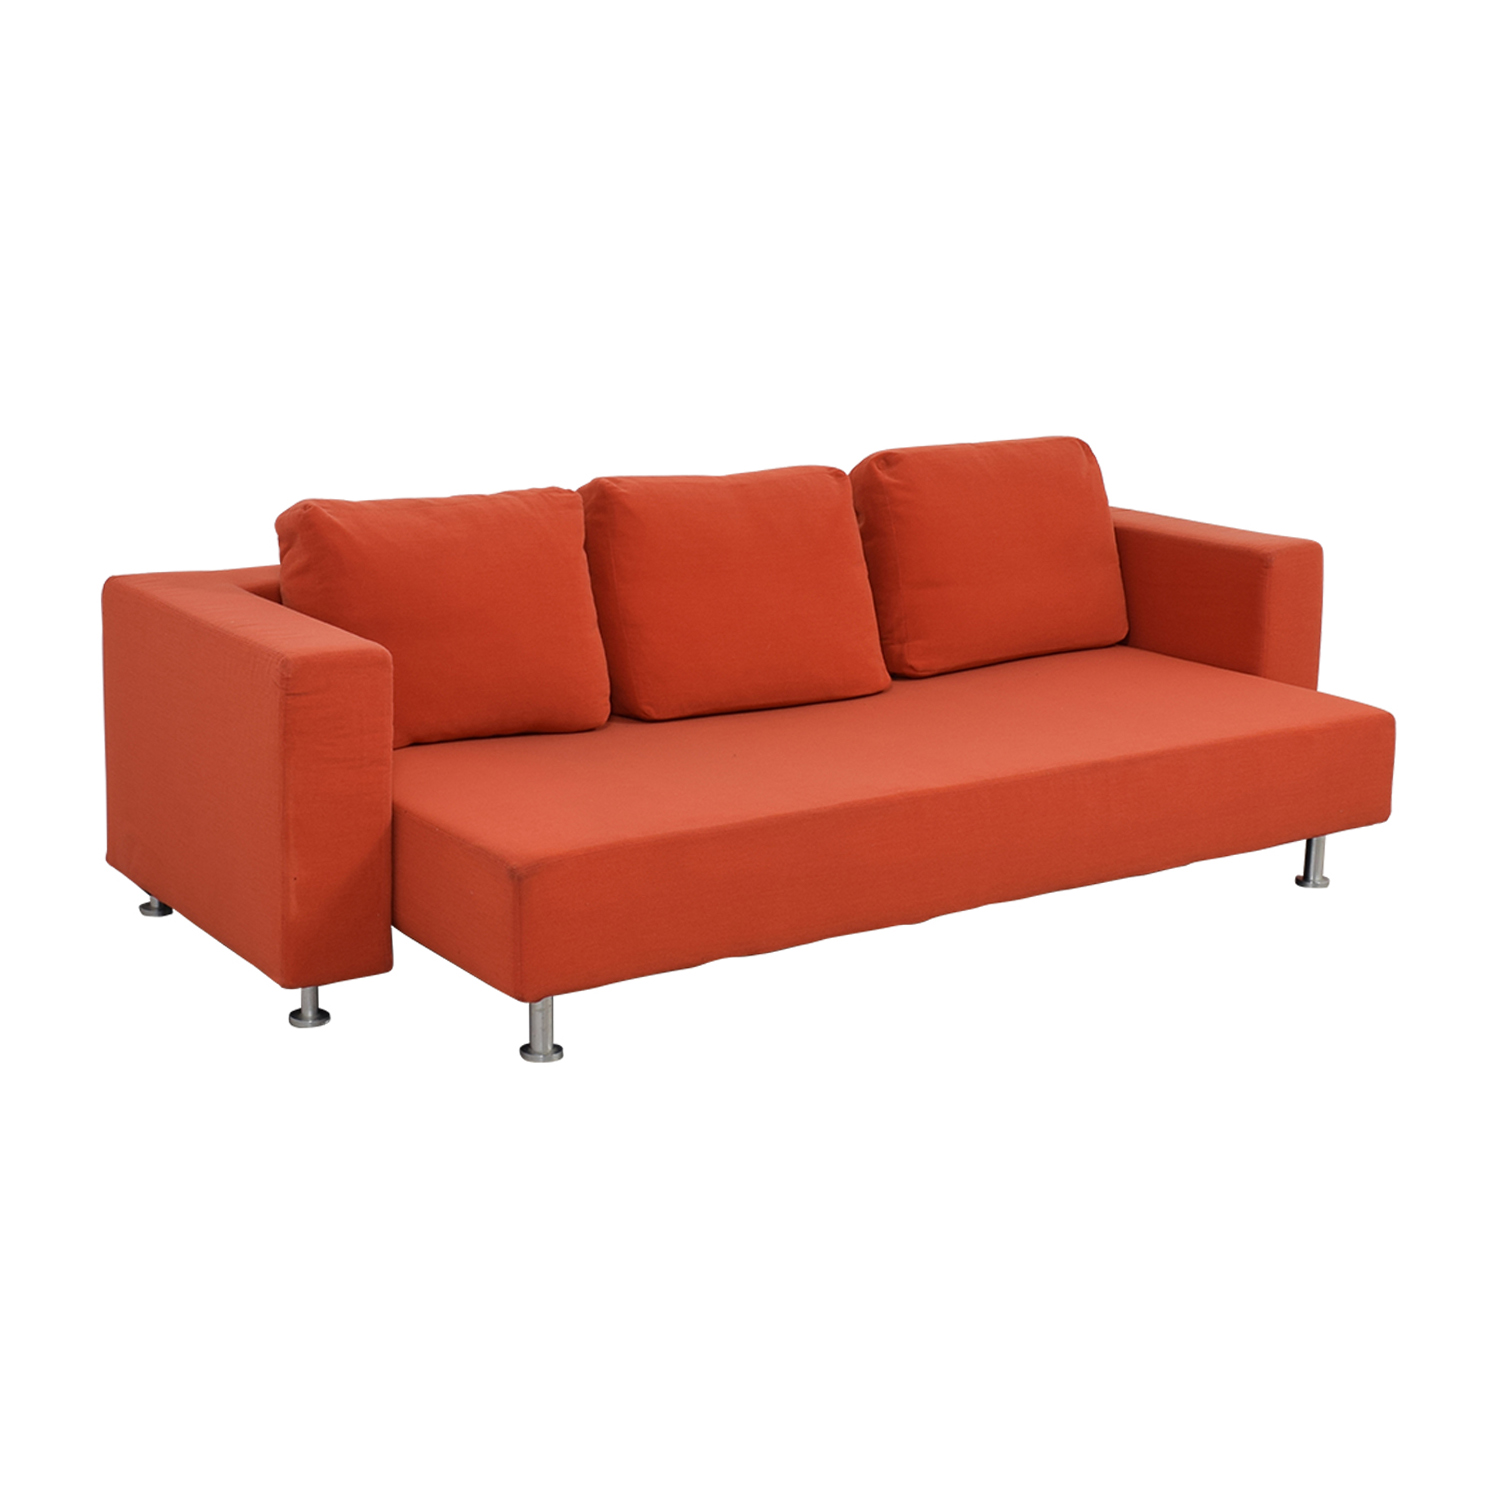 buy Ligne Roset Orange Sleeper Sofa Ligne Roset